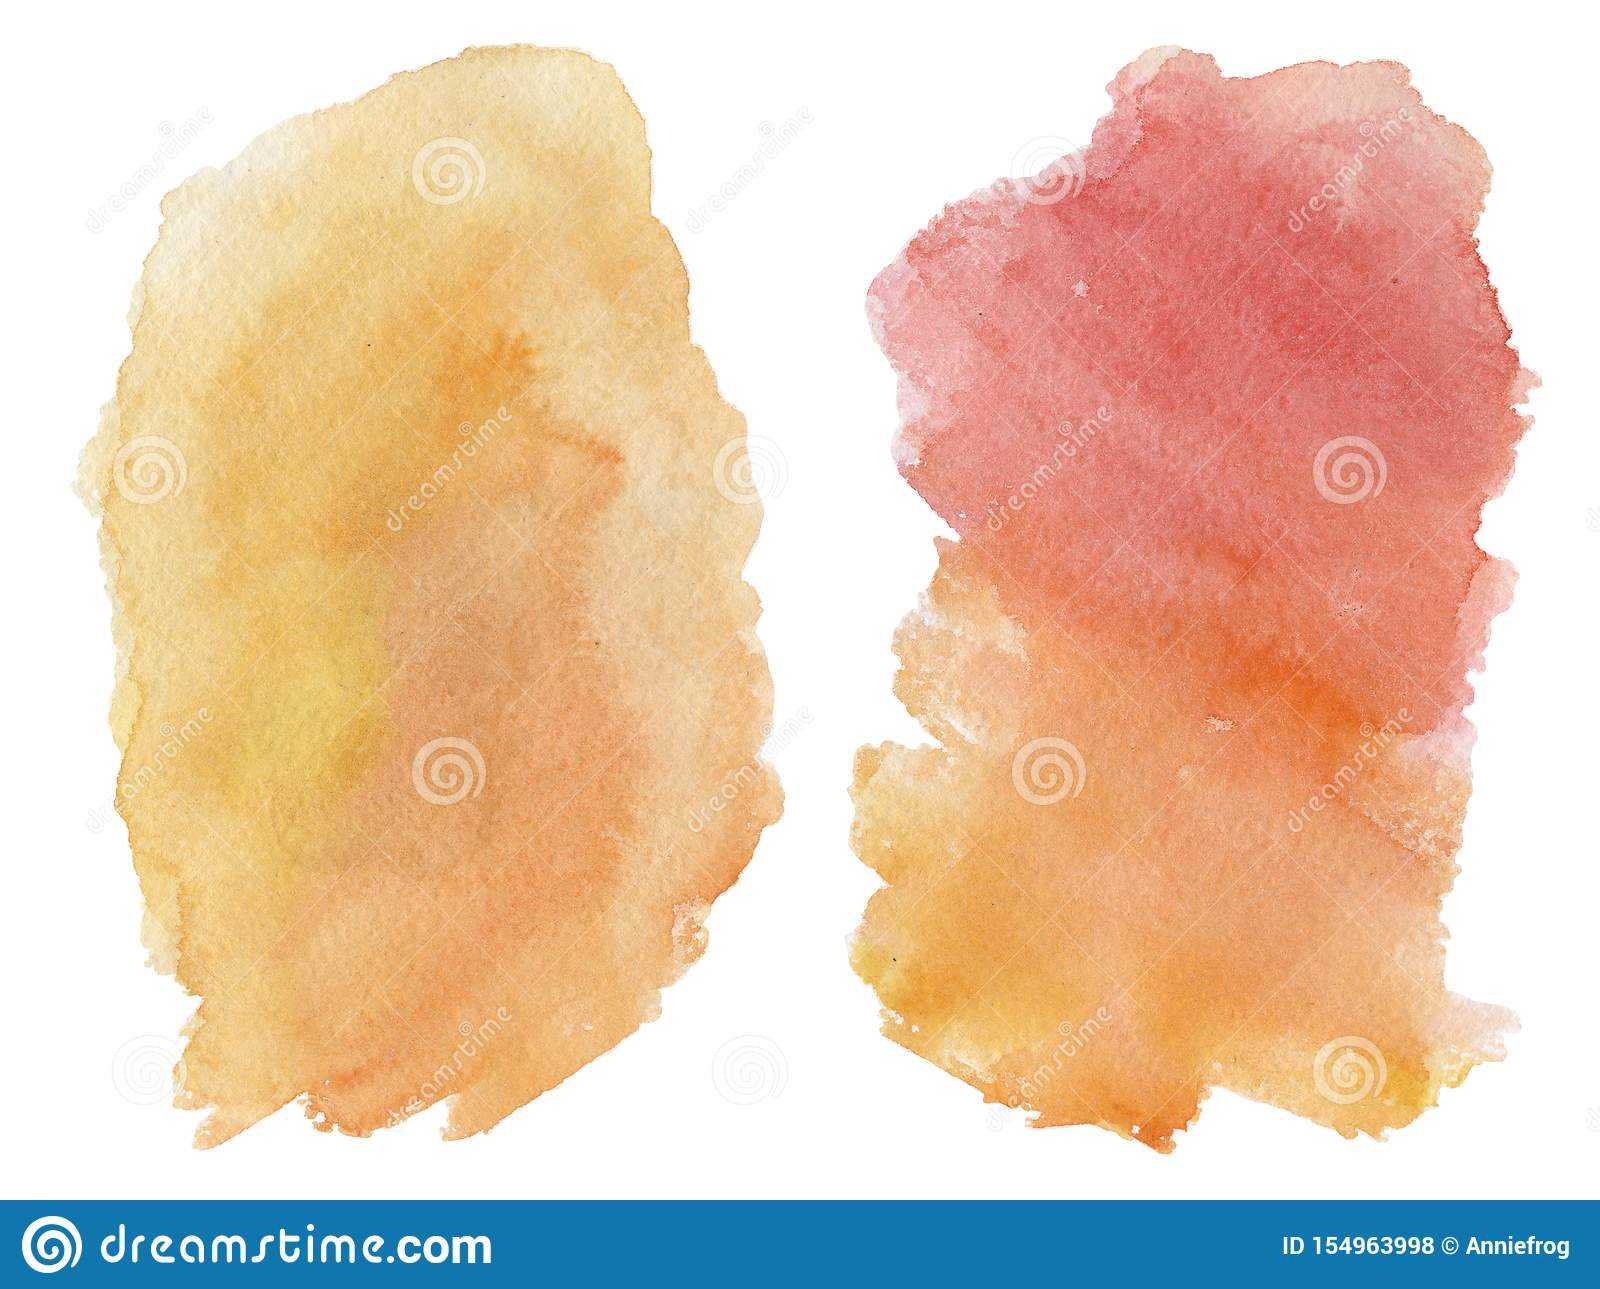 Watercolor blot isolated on white background. Red and orange gradient